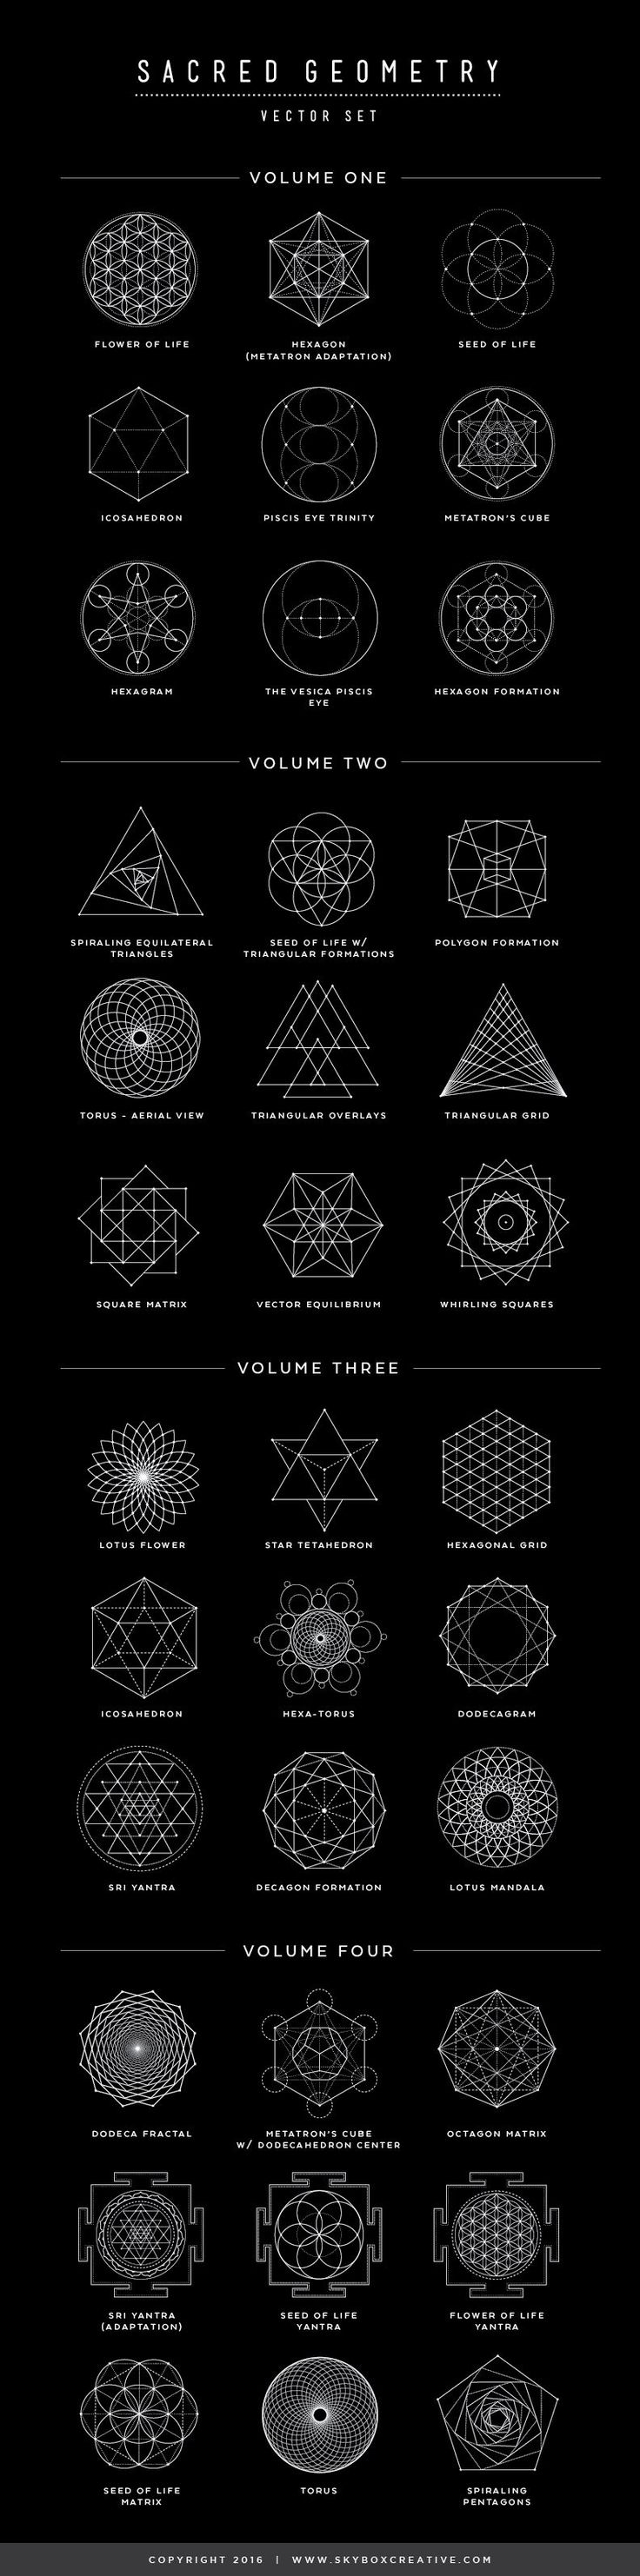 Sacred Geometry symbols, their names and meanings---Great tattoo ideas!! @proulxjustice